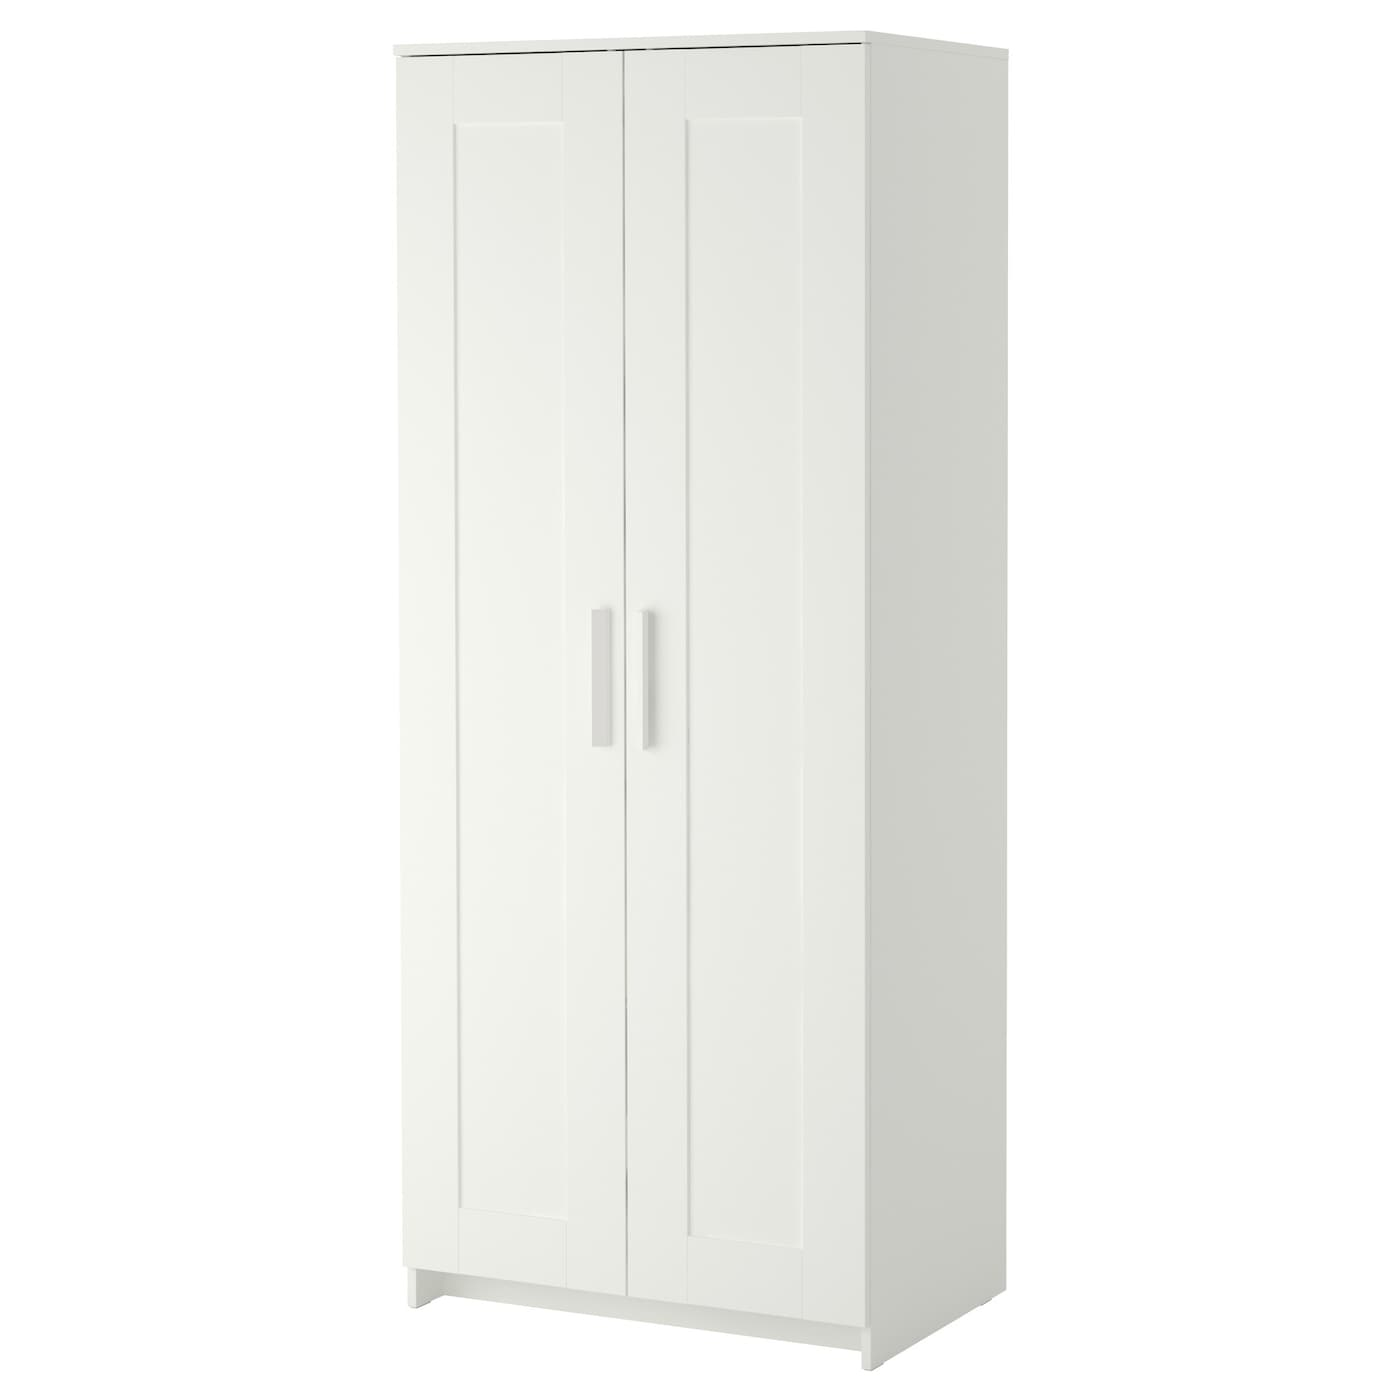 Brimnes wardrobe with 2 doors white 78x190 cm ikea for Armoire portes coulissantes